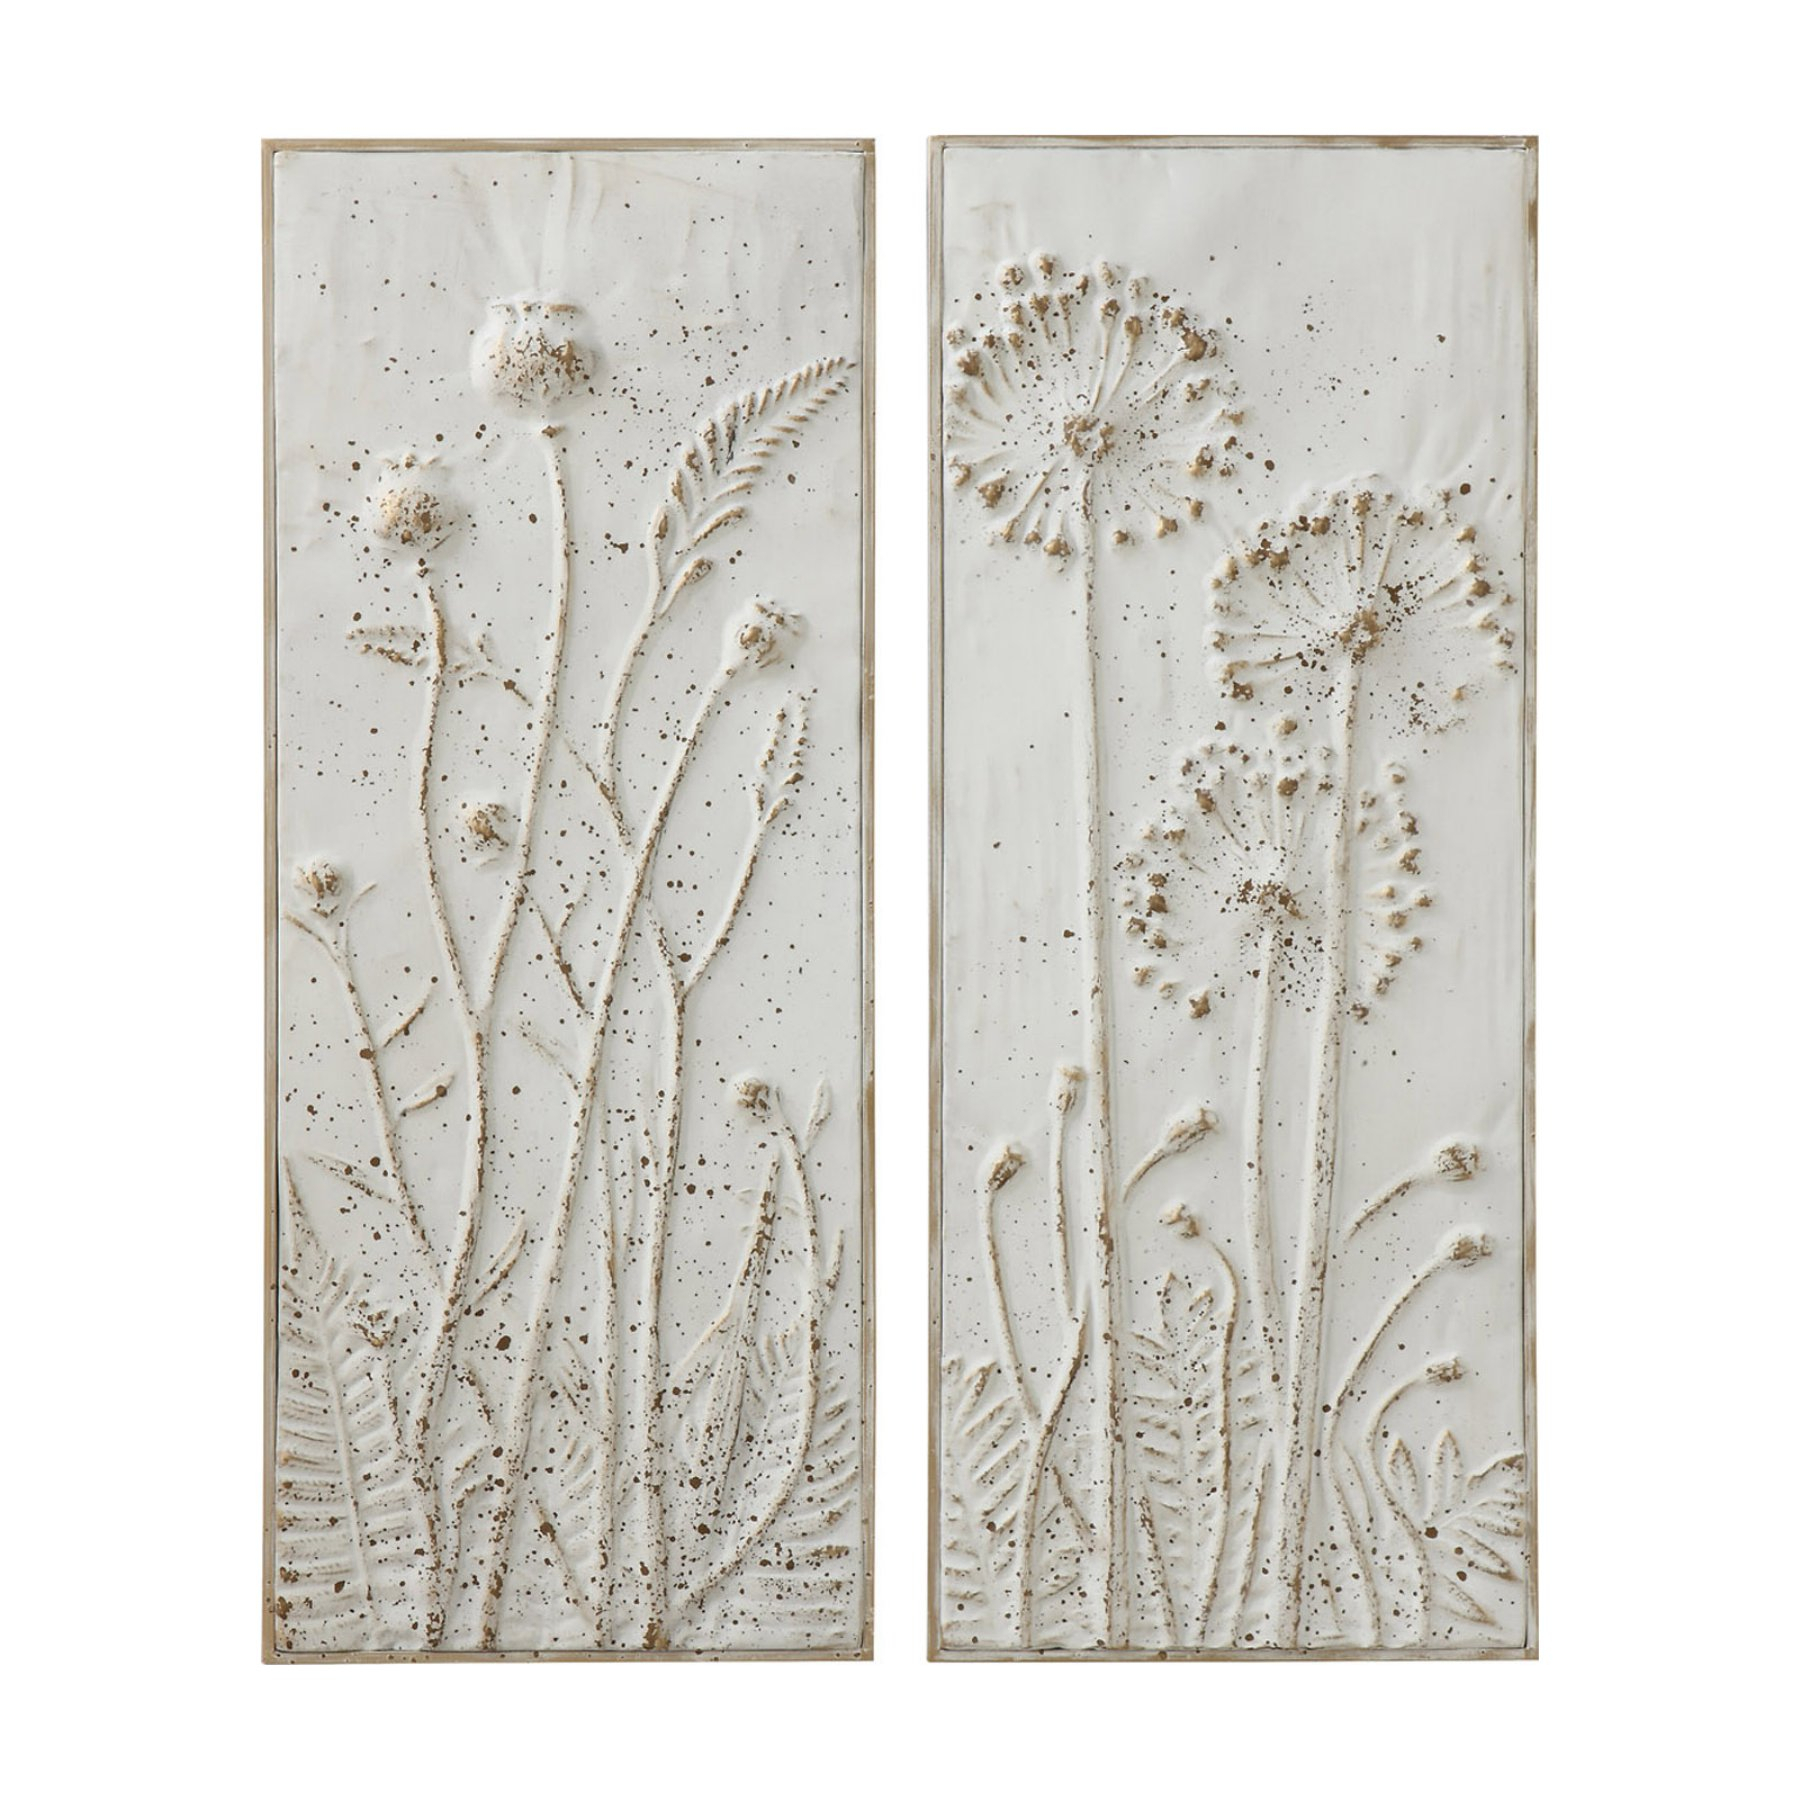 Creative Co Op Metal Wall Decor With Flowers – Set Of 2 With Regard To Panel Wood Wall Decor Sets (set Of 2) (View 17 of 30)